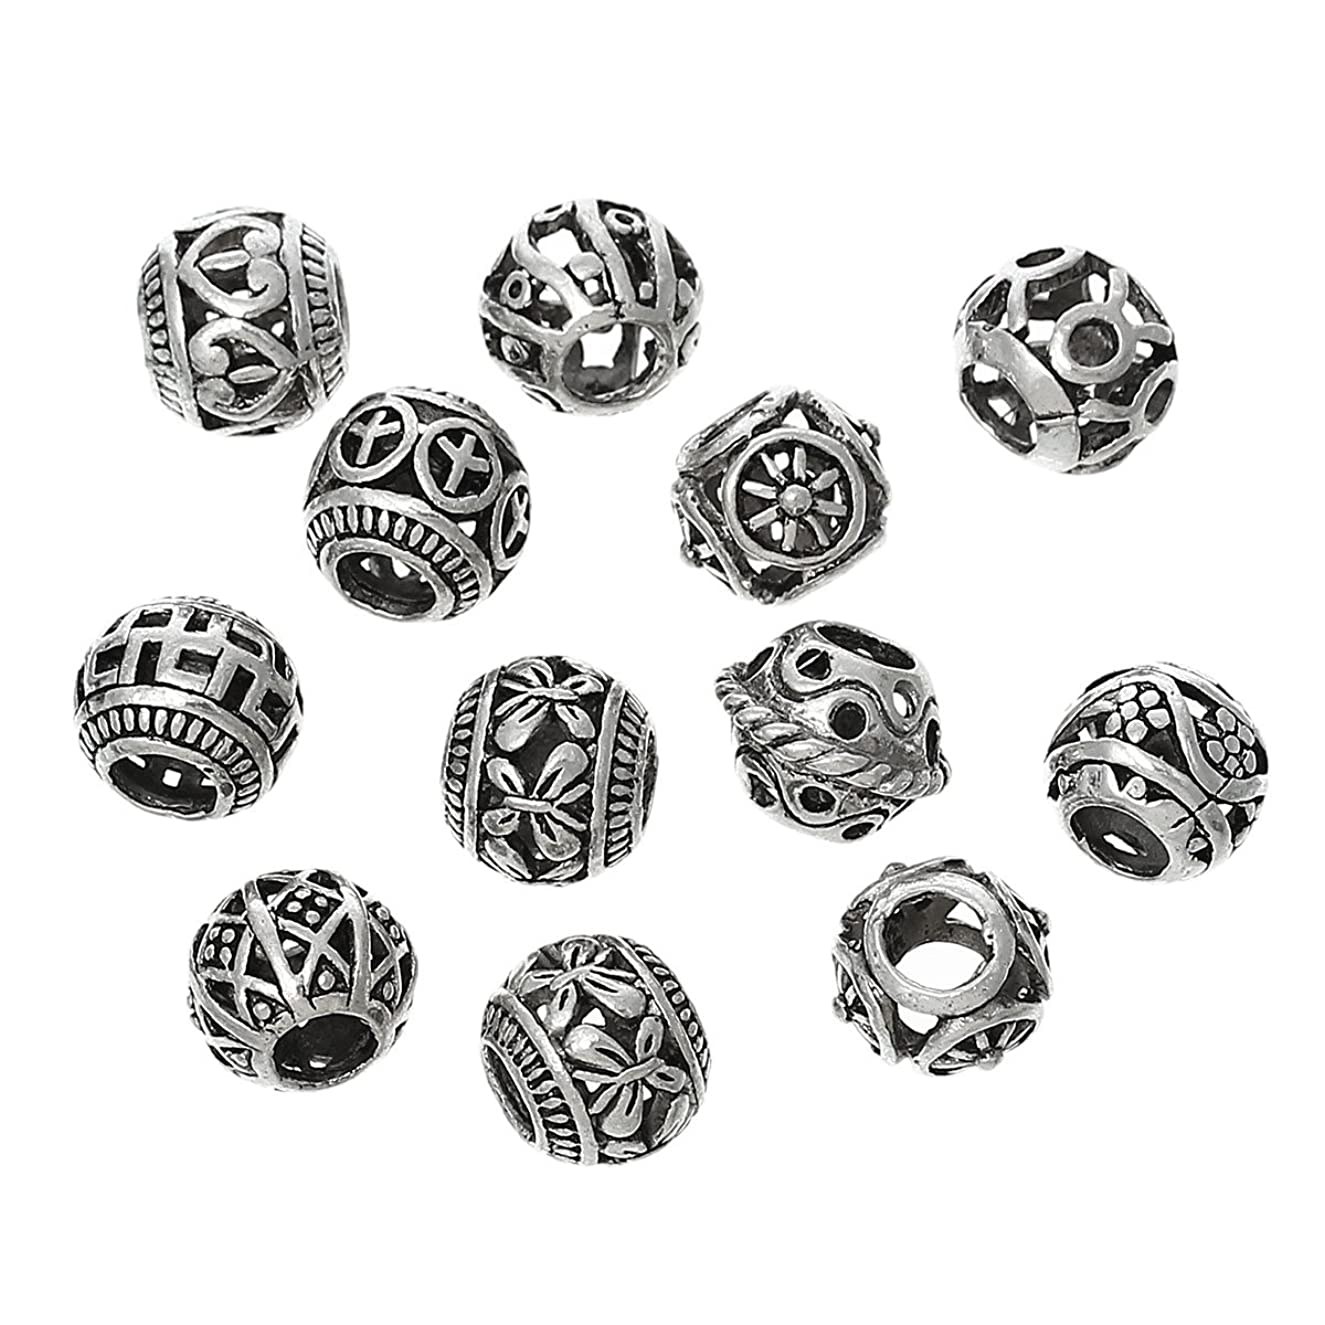 PEPPERLONELY 20pc Antiqued Silver Alloy Large Hole Beads Random Hollow Pattern Charms Pendants 11x9mm (3/8